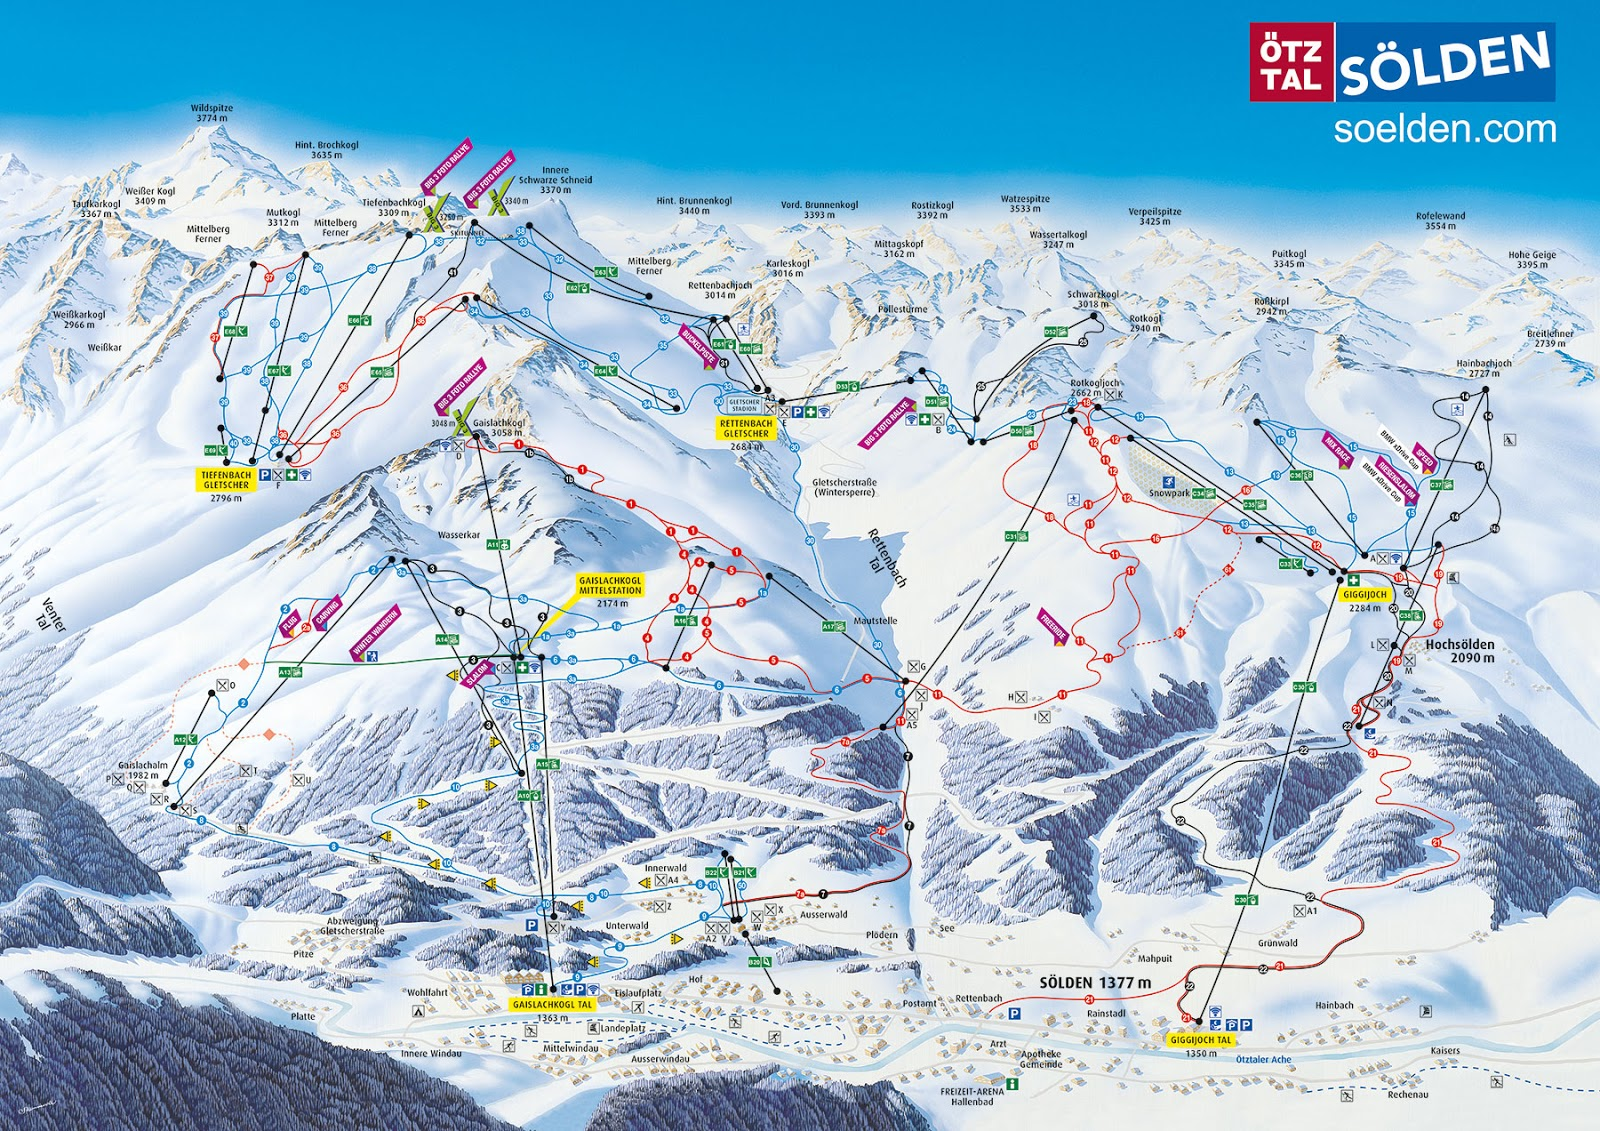 Ski map of Sölden (source: soelden.com).